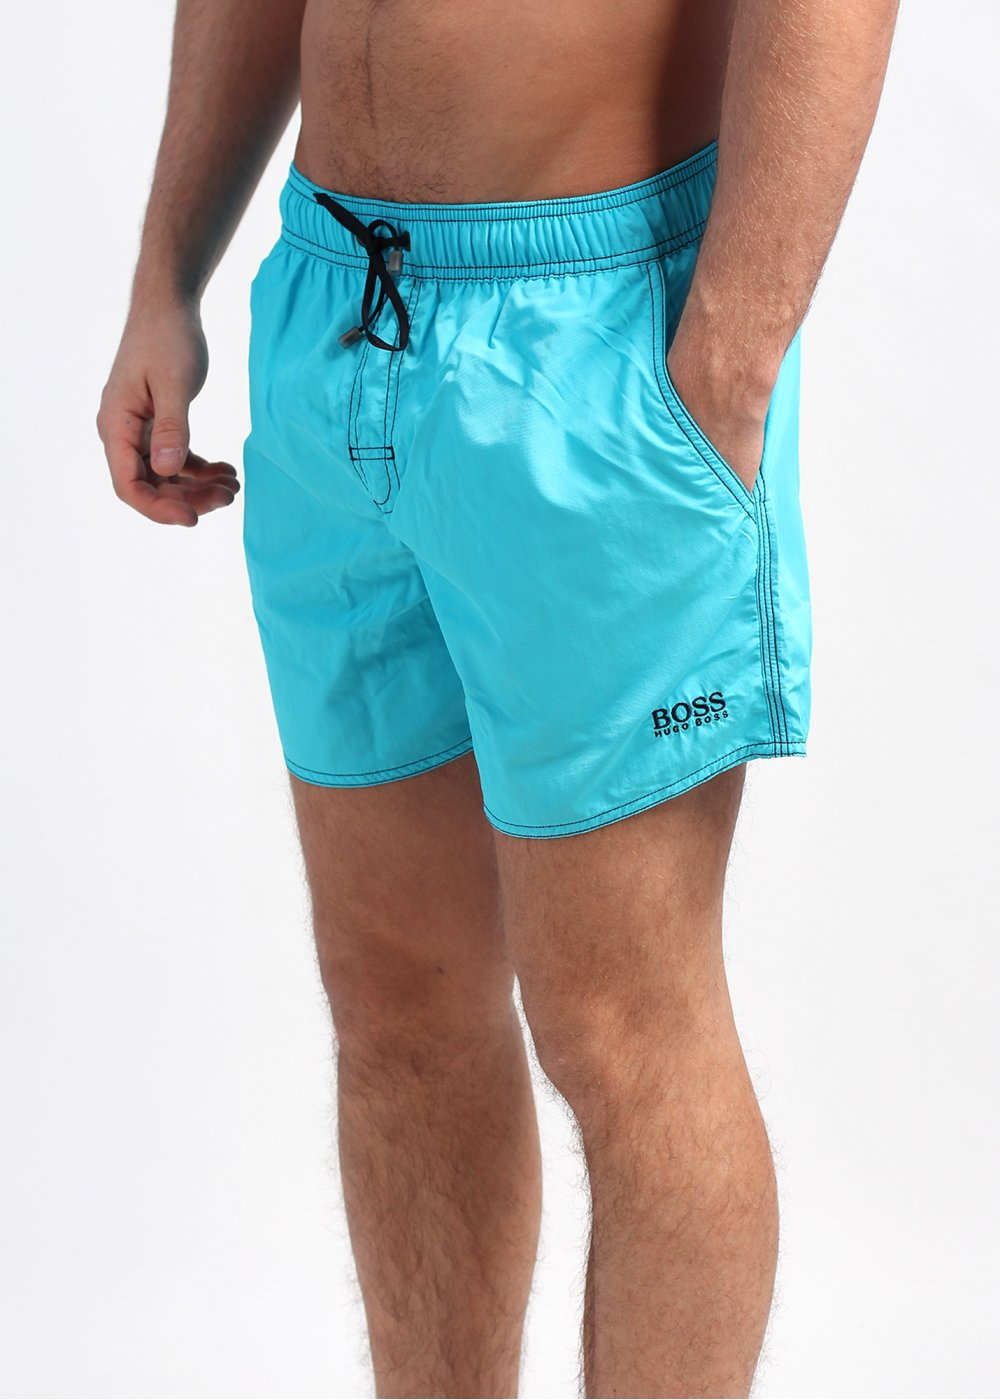 27a7765163 Hugo Boss Black Lobster Swim Shorts - Light Blue